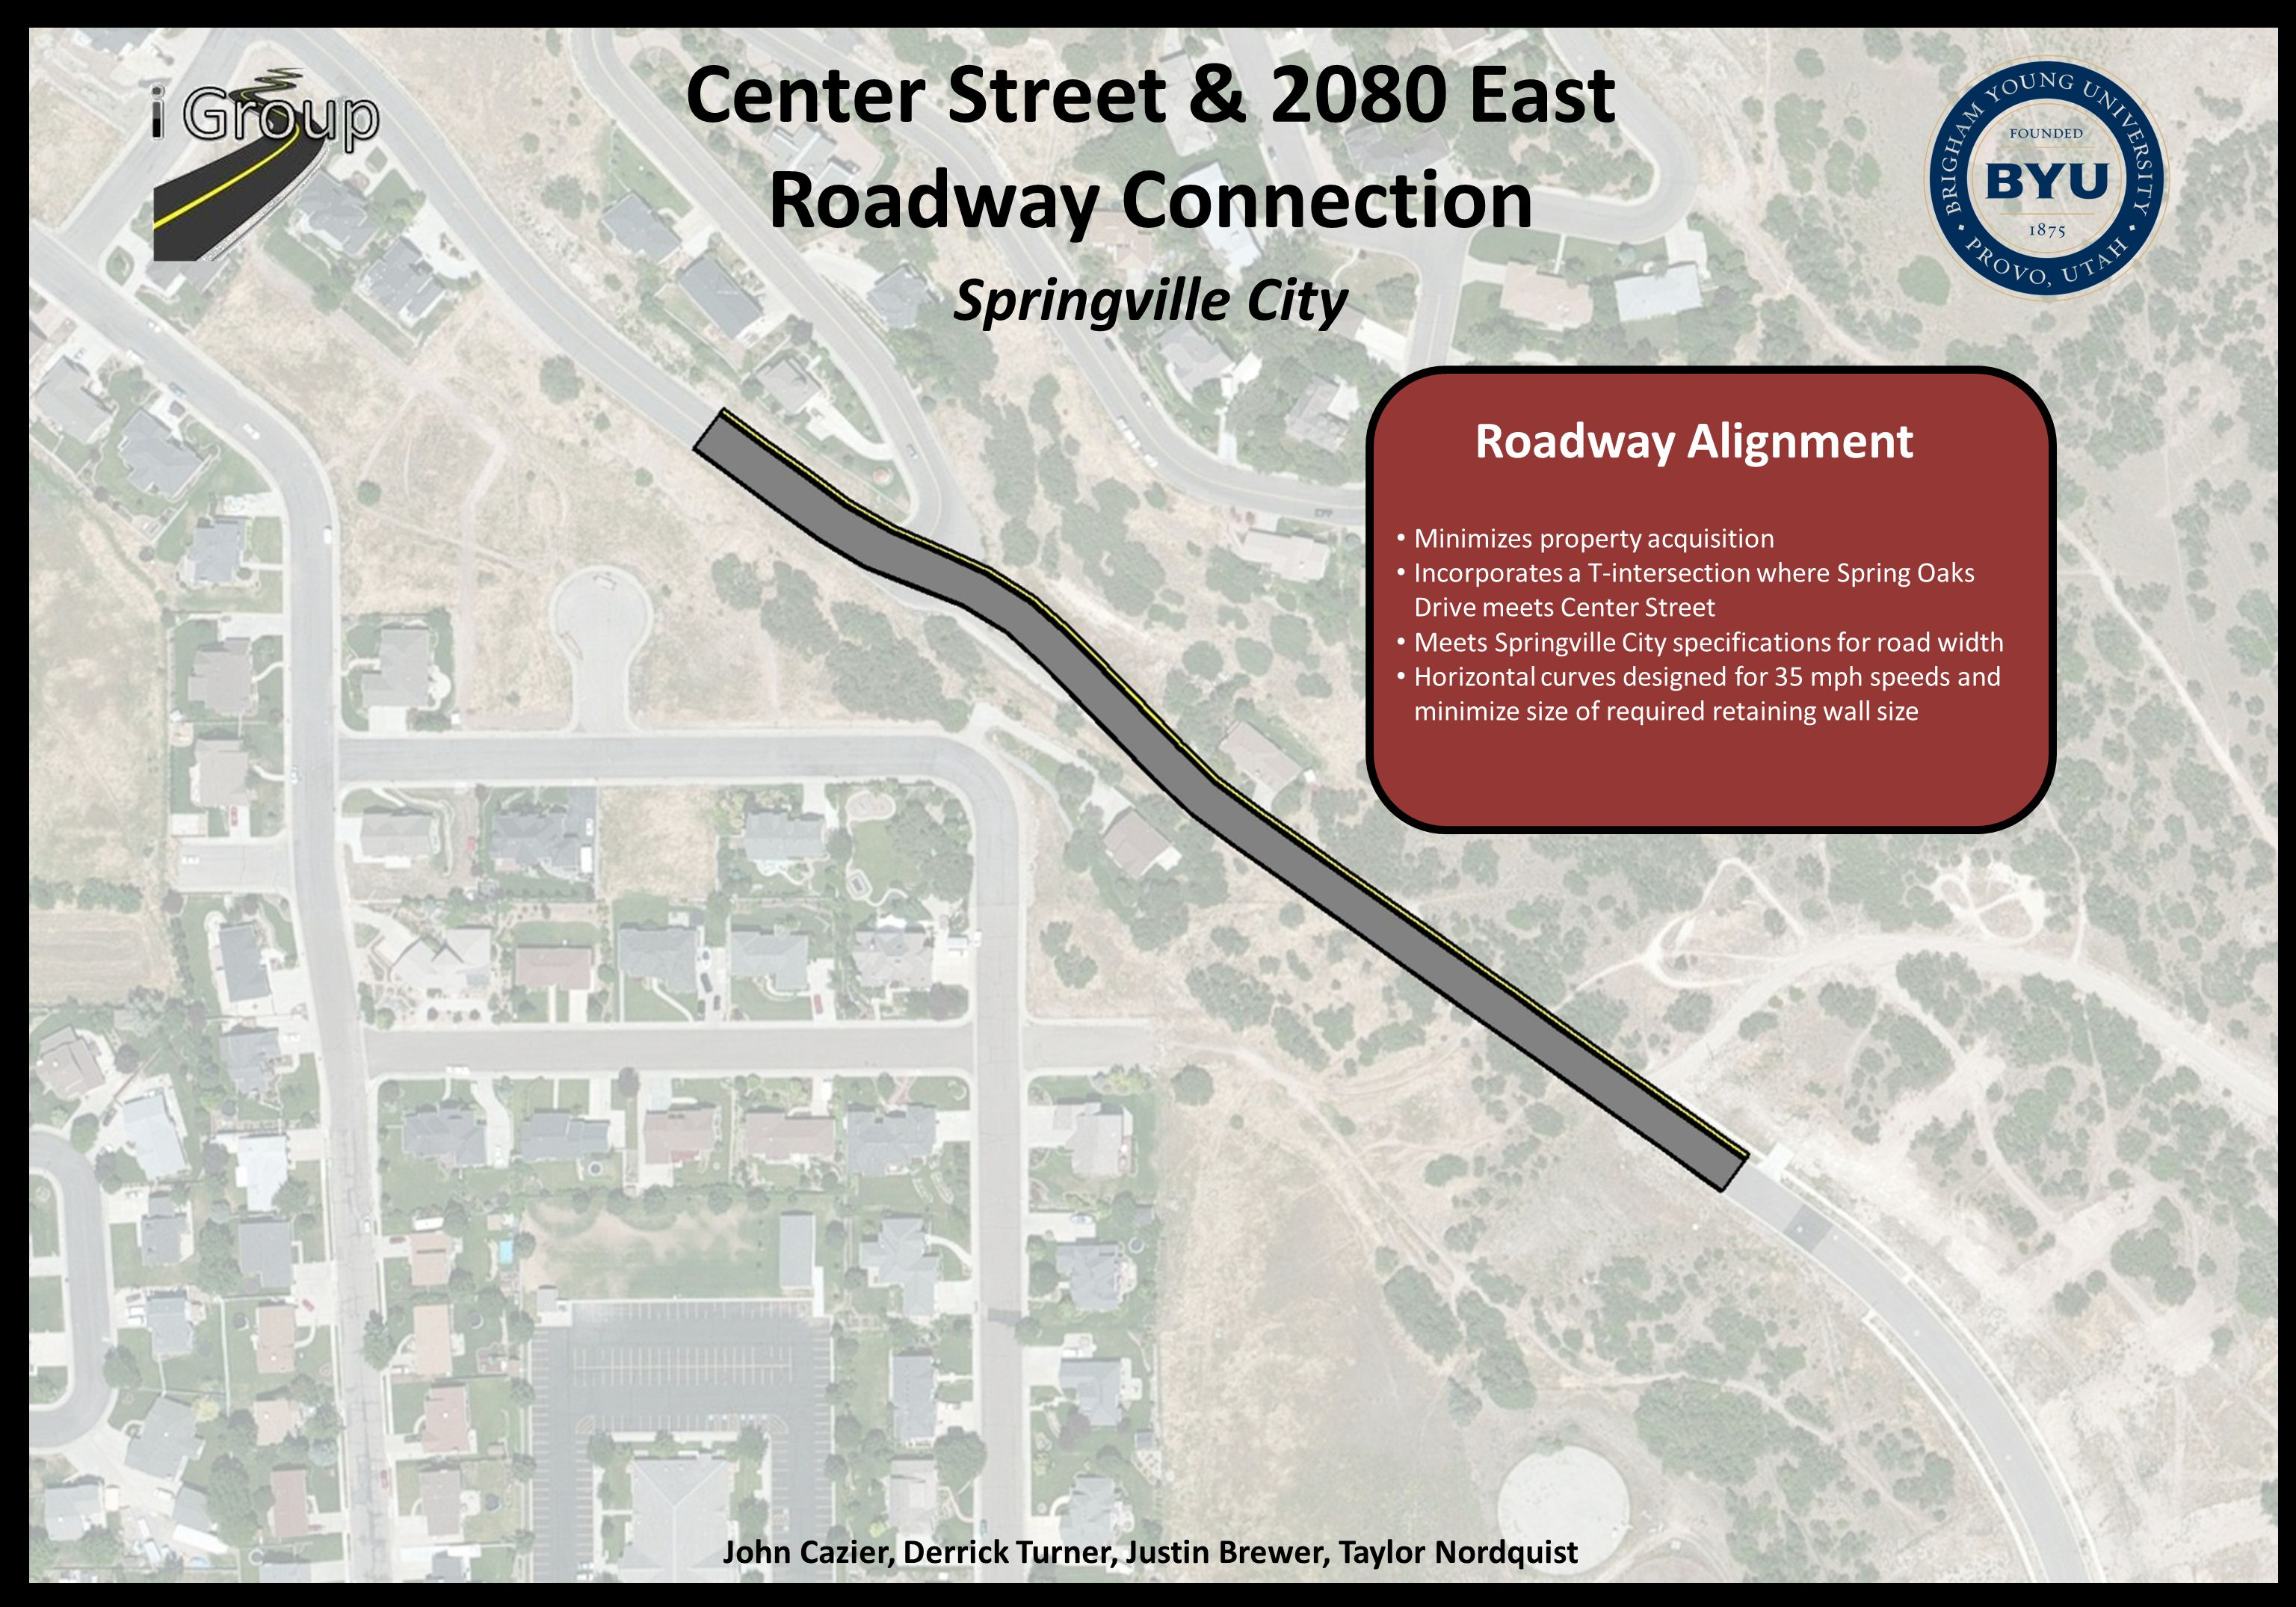 Center Street & 2080 East Roadway Connection Springville City John Cazier, Derrick Turner, Justin Brewer, Taylor Nordquist Roadway Alignment Minimizes property acquisition Incorporates a T-intersection where Spring Oaks Drive meets Center Street Meets Springville City specifications for road width Horizontal curves designed for 35 mph speeds and minimize size of required retaining wall size